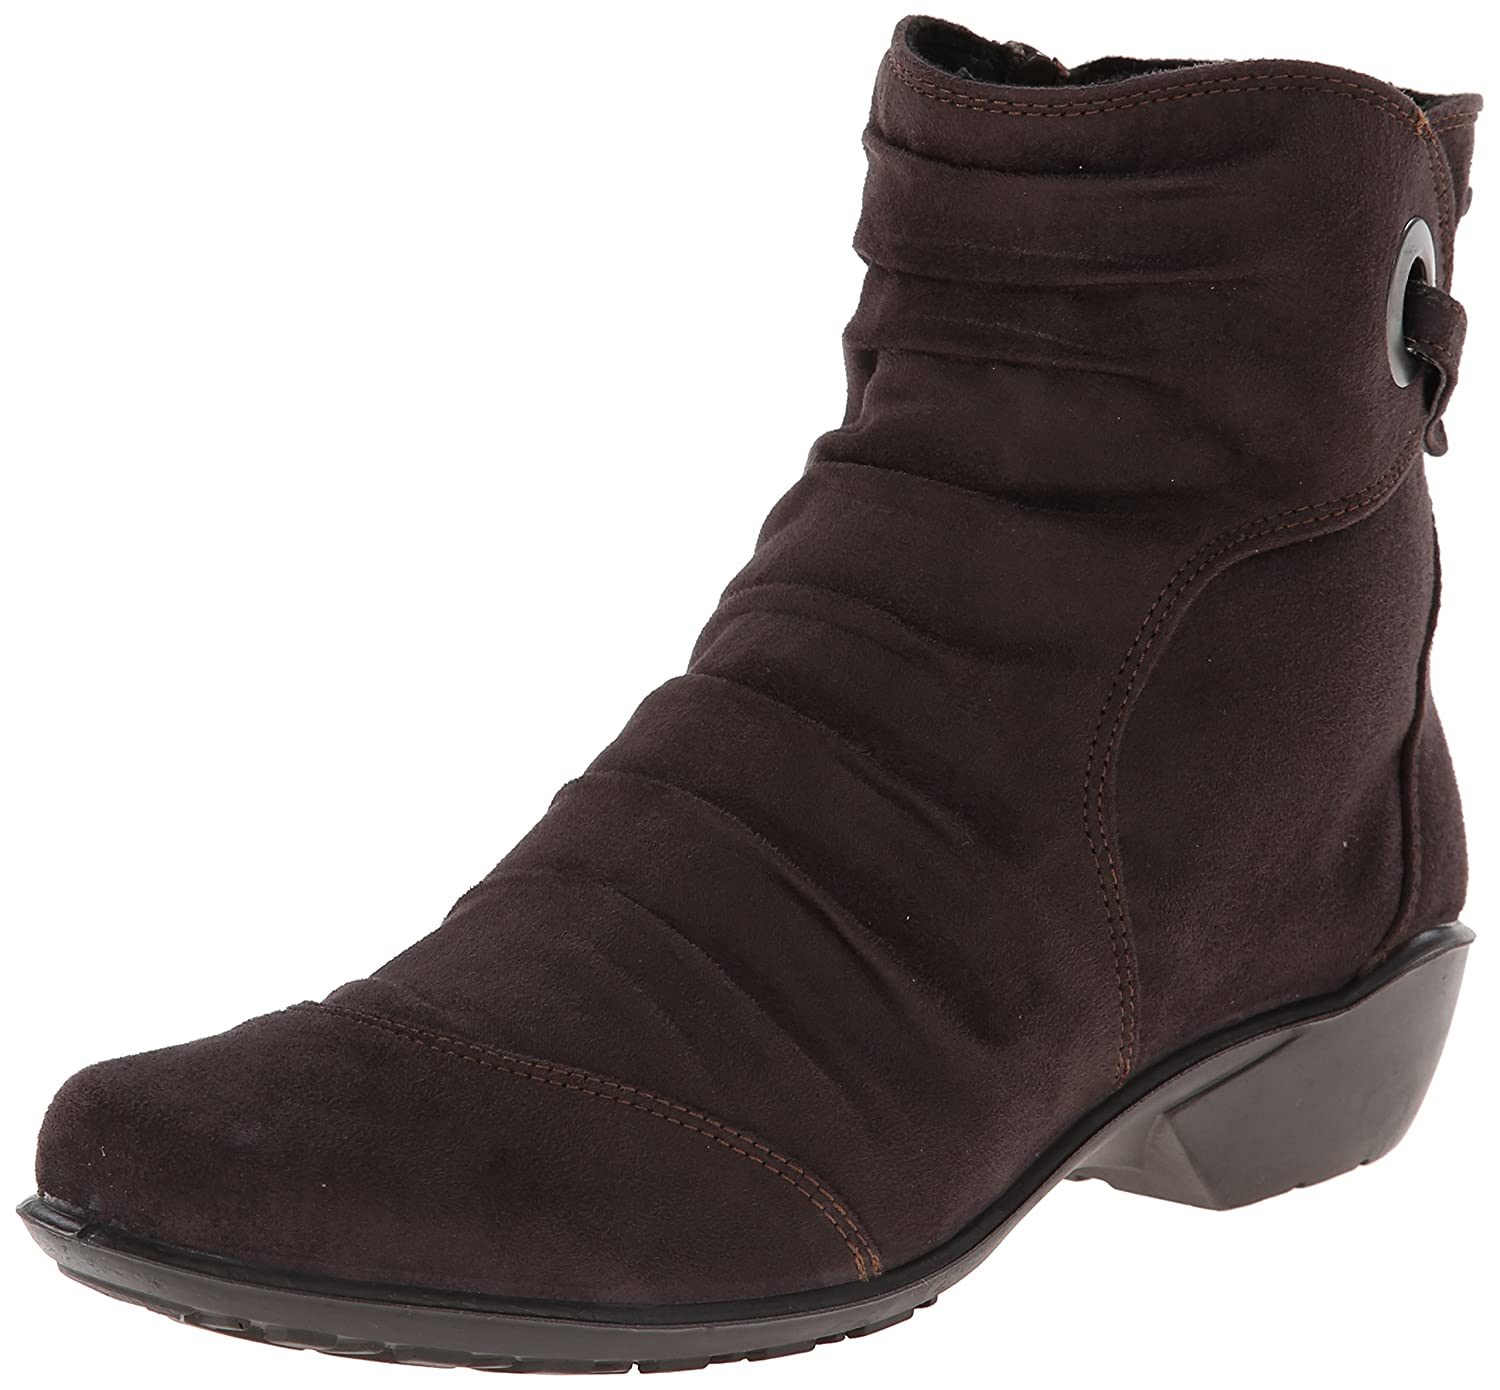 Romika Women's Citytex 121 Boot B00BJ8JGR0 39 BR/8-8.5 M US|Moro